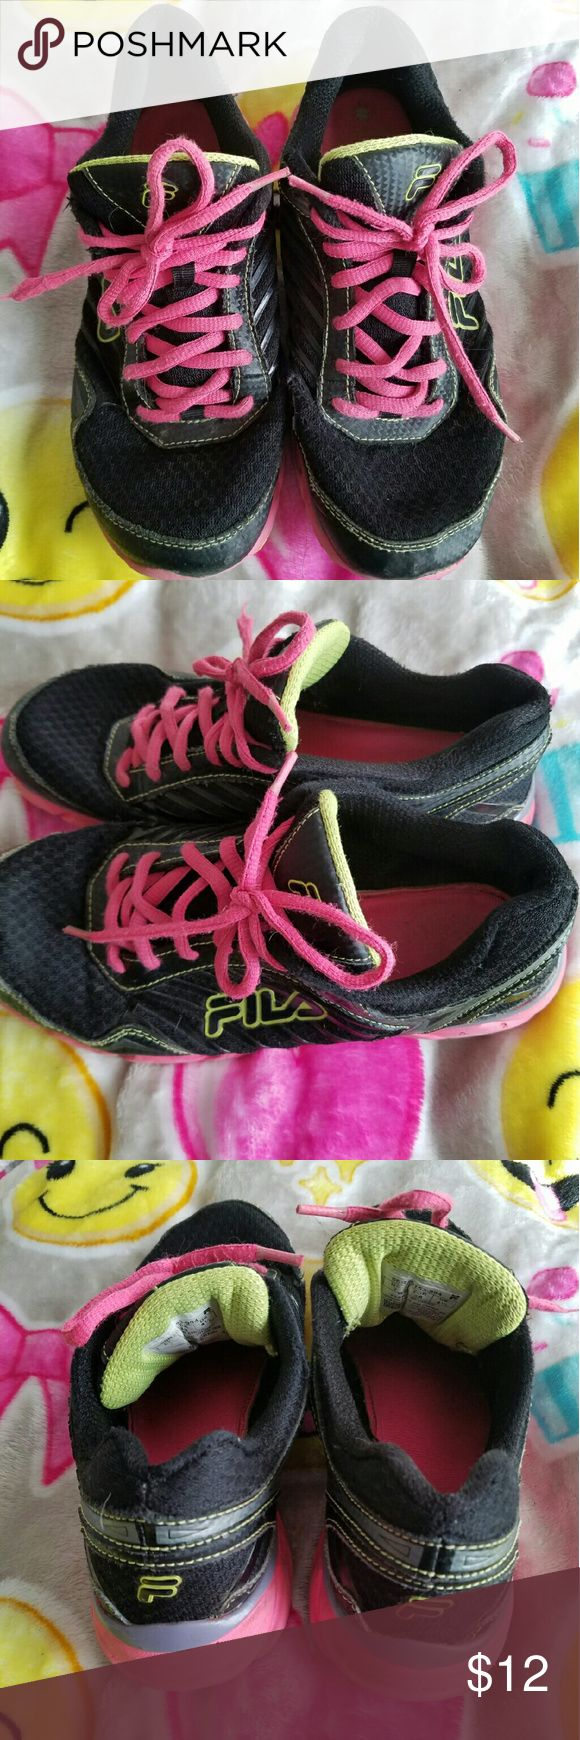 FILA GIRL'S/WOMEN'S ATHLETIC SHOES FILA GIRL'S/WOMEN'S ATHLETIC SHOES.  NON SMOKING HOME. Green, pink and black. FILA Shoes Sneakers